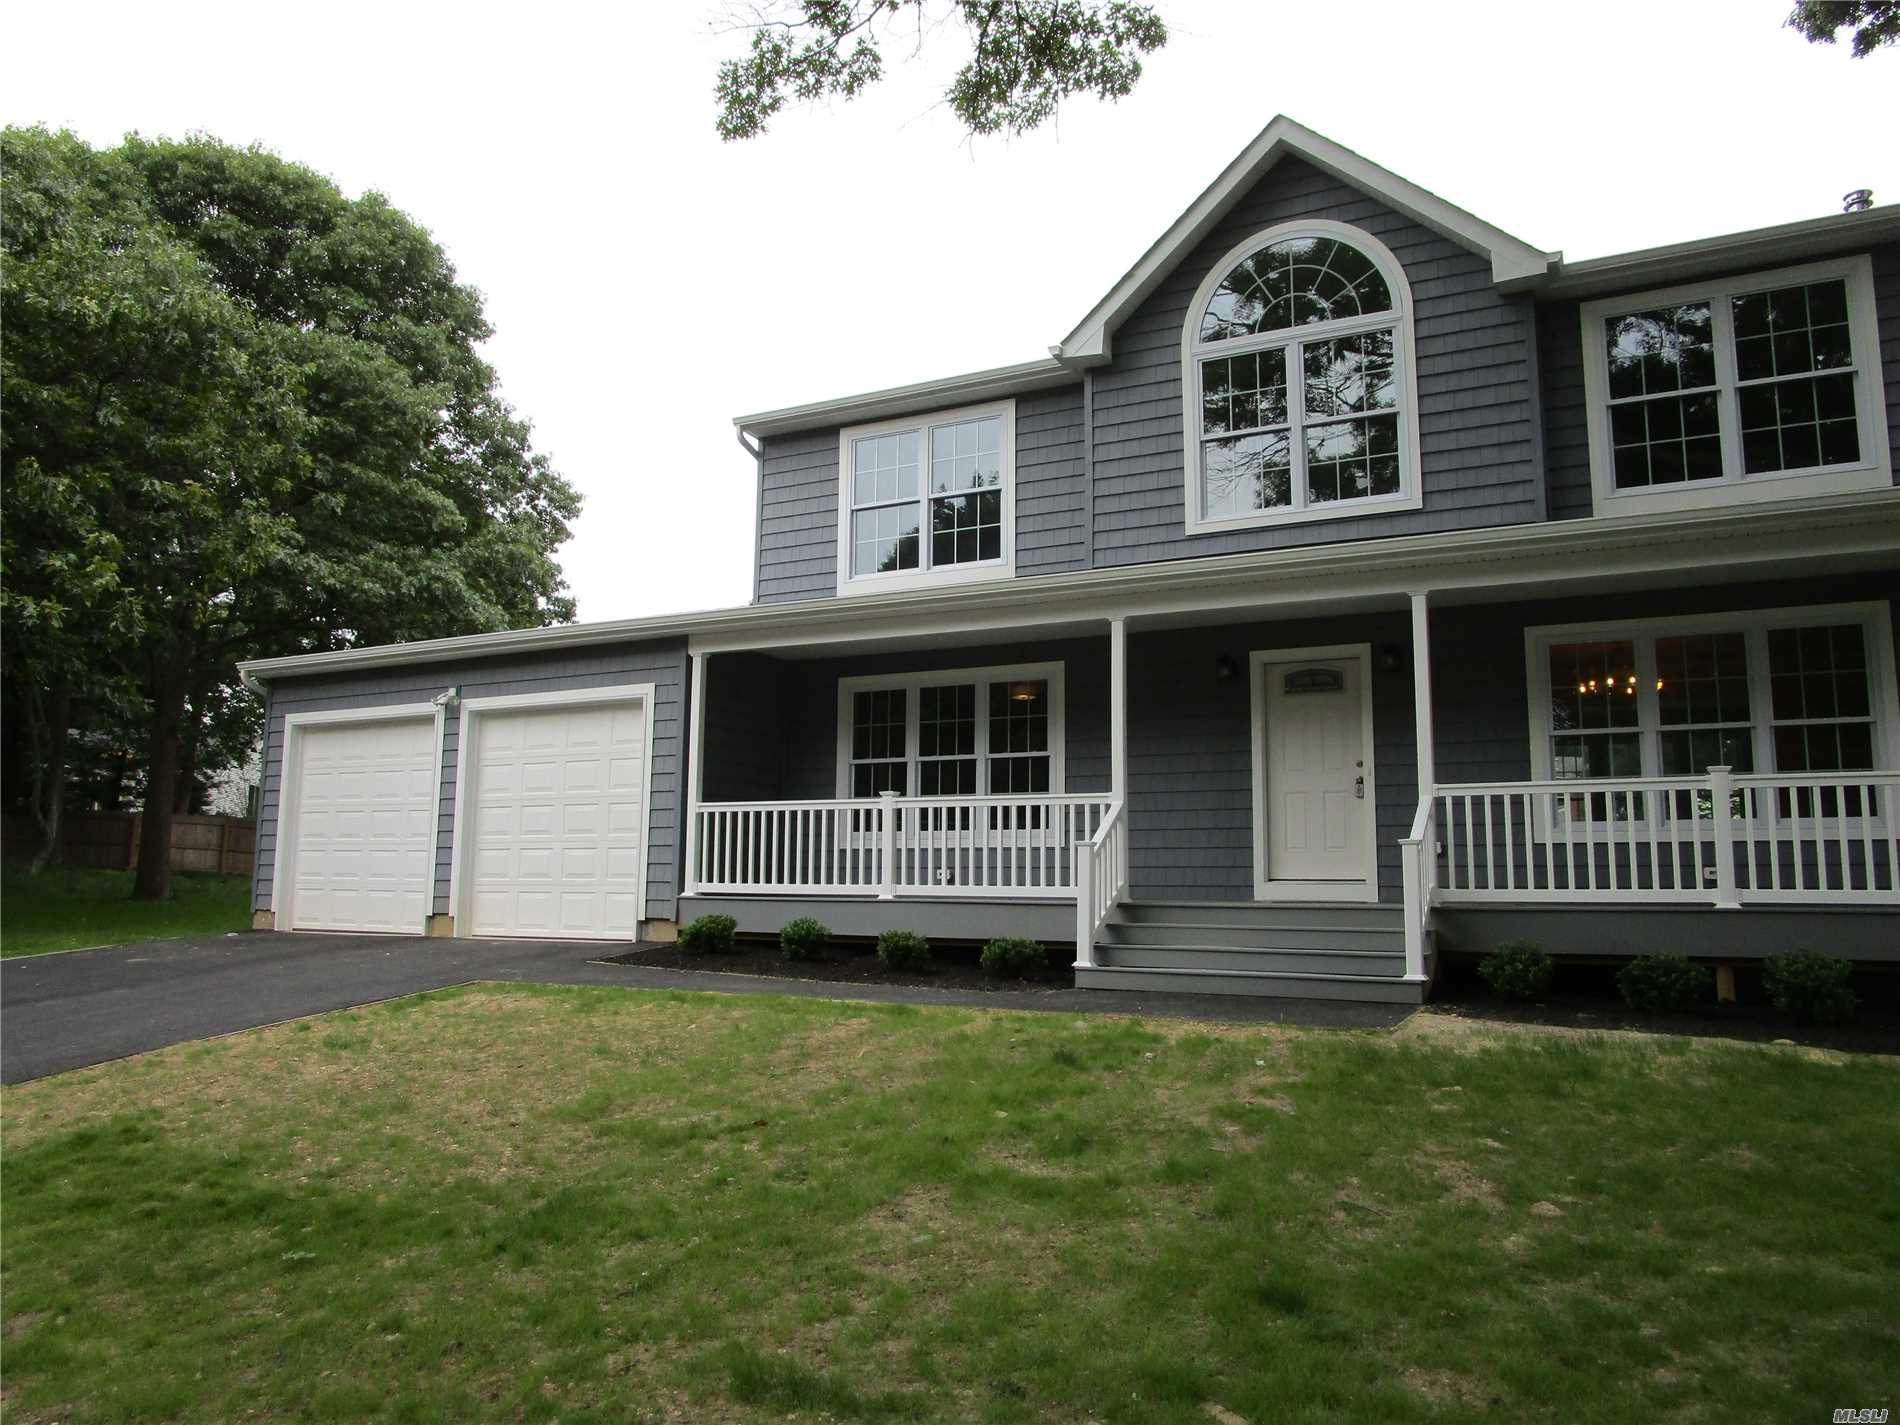 Beautiful New Home To Be Built 4 Bedrooms 2.5 Baths Hardwood Floors Den With Fireplace Formal Dining And Living Rooms Eat-In-Kitchen With Granite Crown Molding,  2 Car Garage And Full Basement. Lot Is .48 Flat Property Great Location In Sachem Schools Photos Are Of Similar Home, This Home Is To Be Built. Time To Customize.